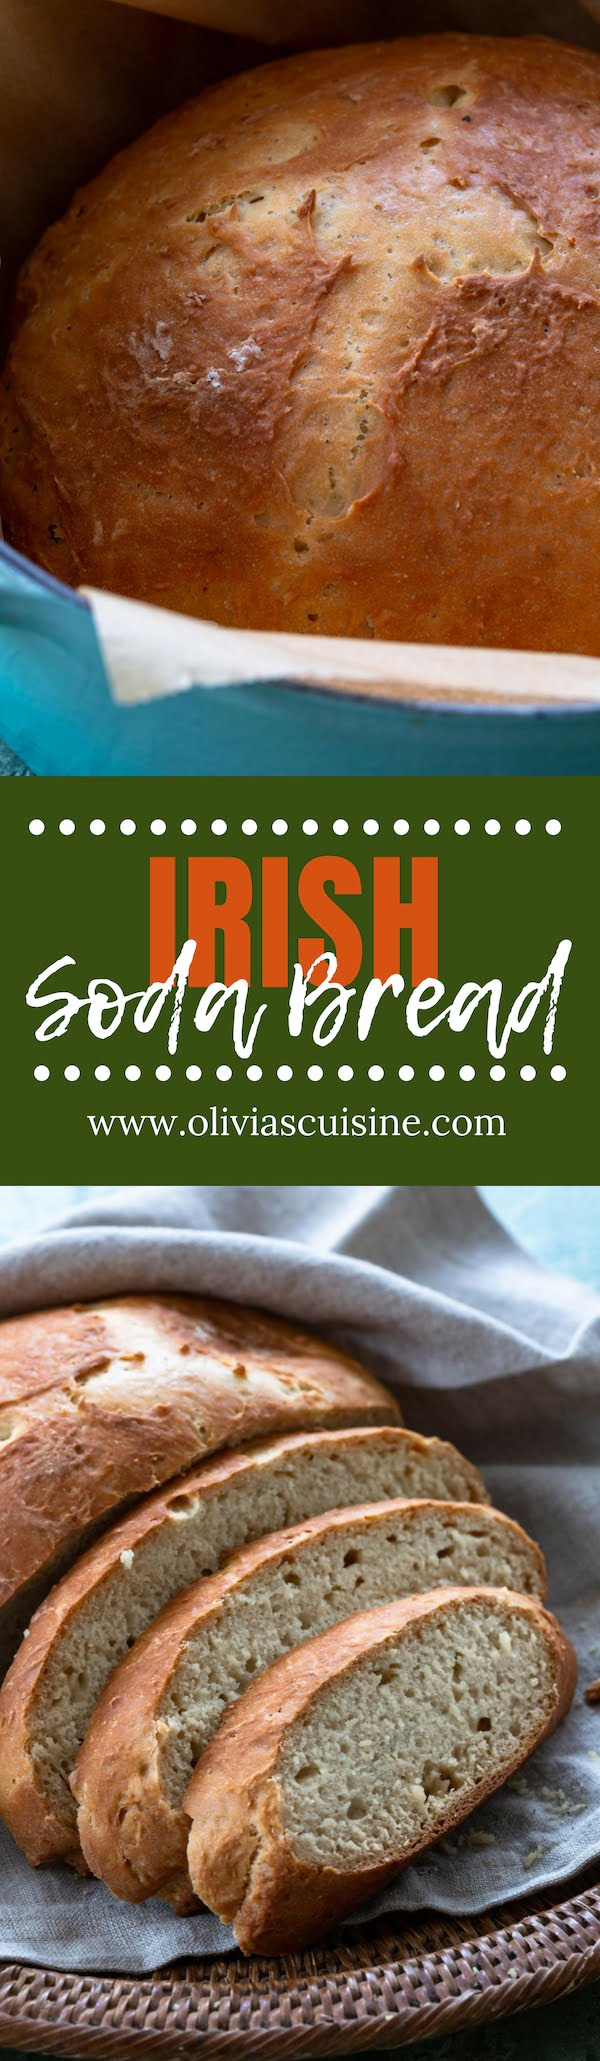 Irish Soda Bread | www.oliviascuisine.com | Even if you're not Irish, this soda bread recipe is one you'll want to have in your repertoire. Easy, requires no kneading and tastes great, especially while still warm with a slab of butter! (Recipe and food photography by @oliviascuisine). #sodabread #bread #baking #irish